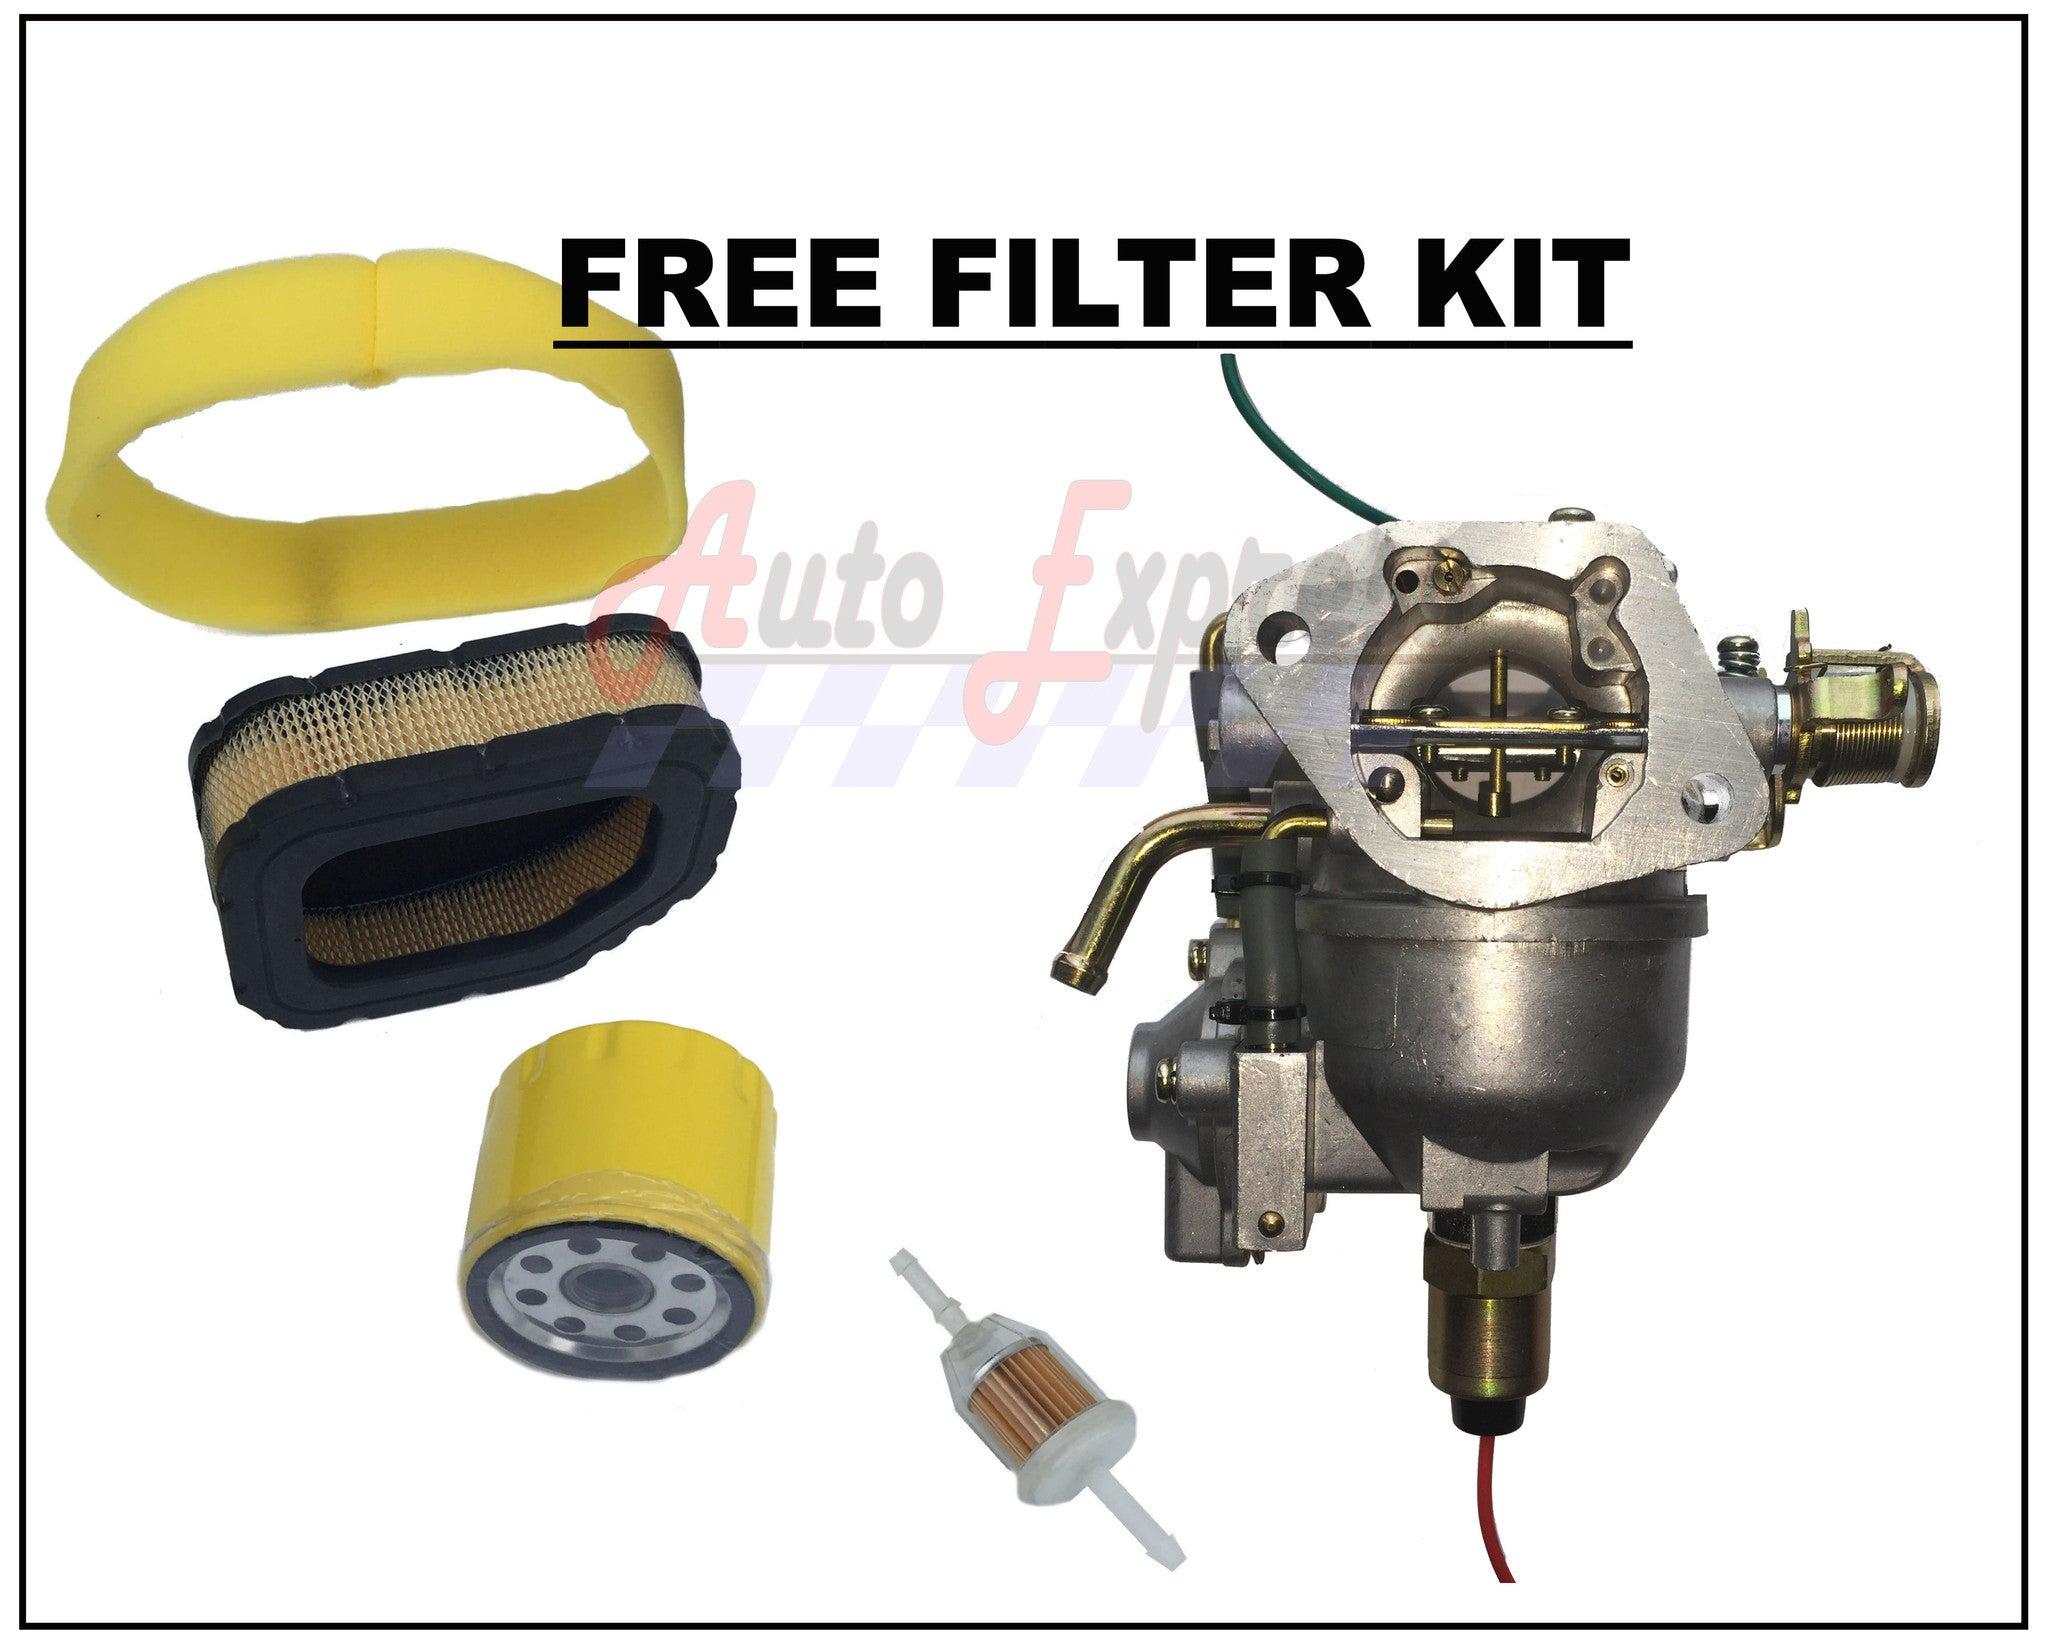 Carburetor for Kohler CV675 CV740 Nikki Carb Tune Up Kit Pump Filters - AE-Power